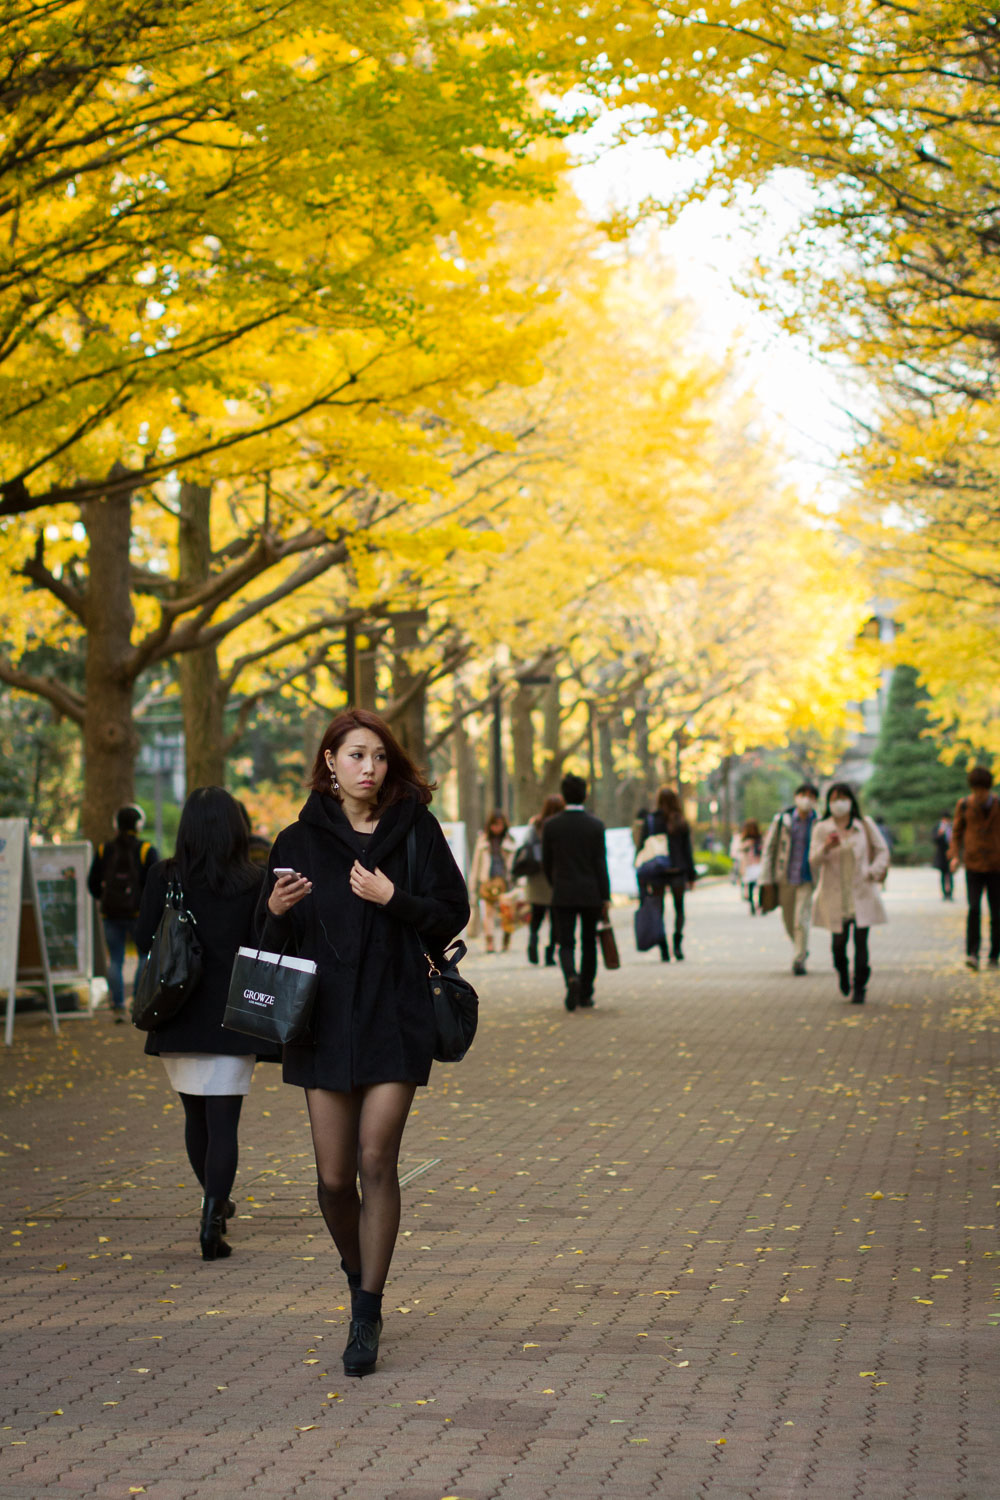 A young woman walks under golden ginkgo trees during autumn on the Aoyama Gakuin campus in Tokyo, Japan